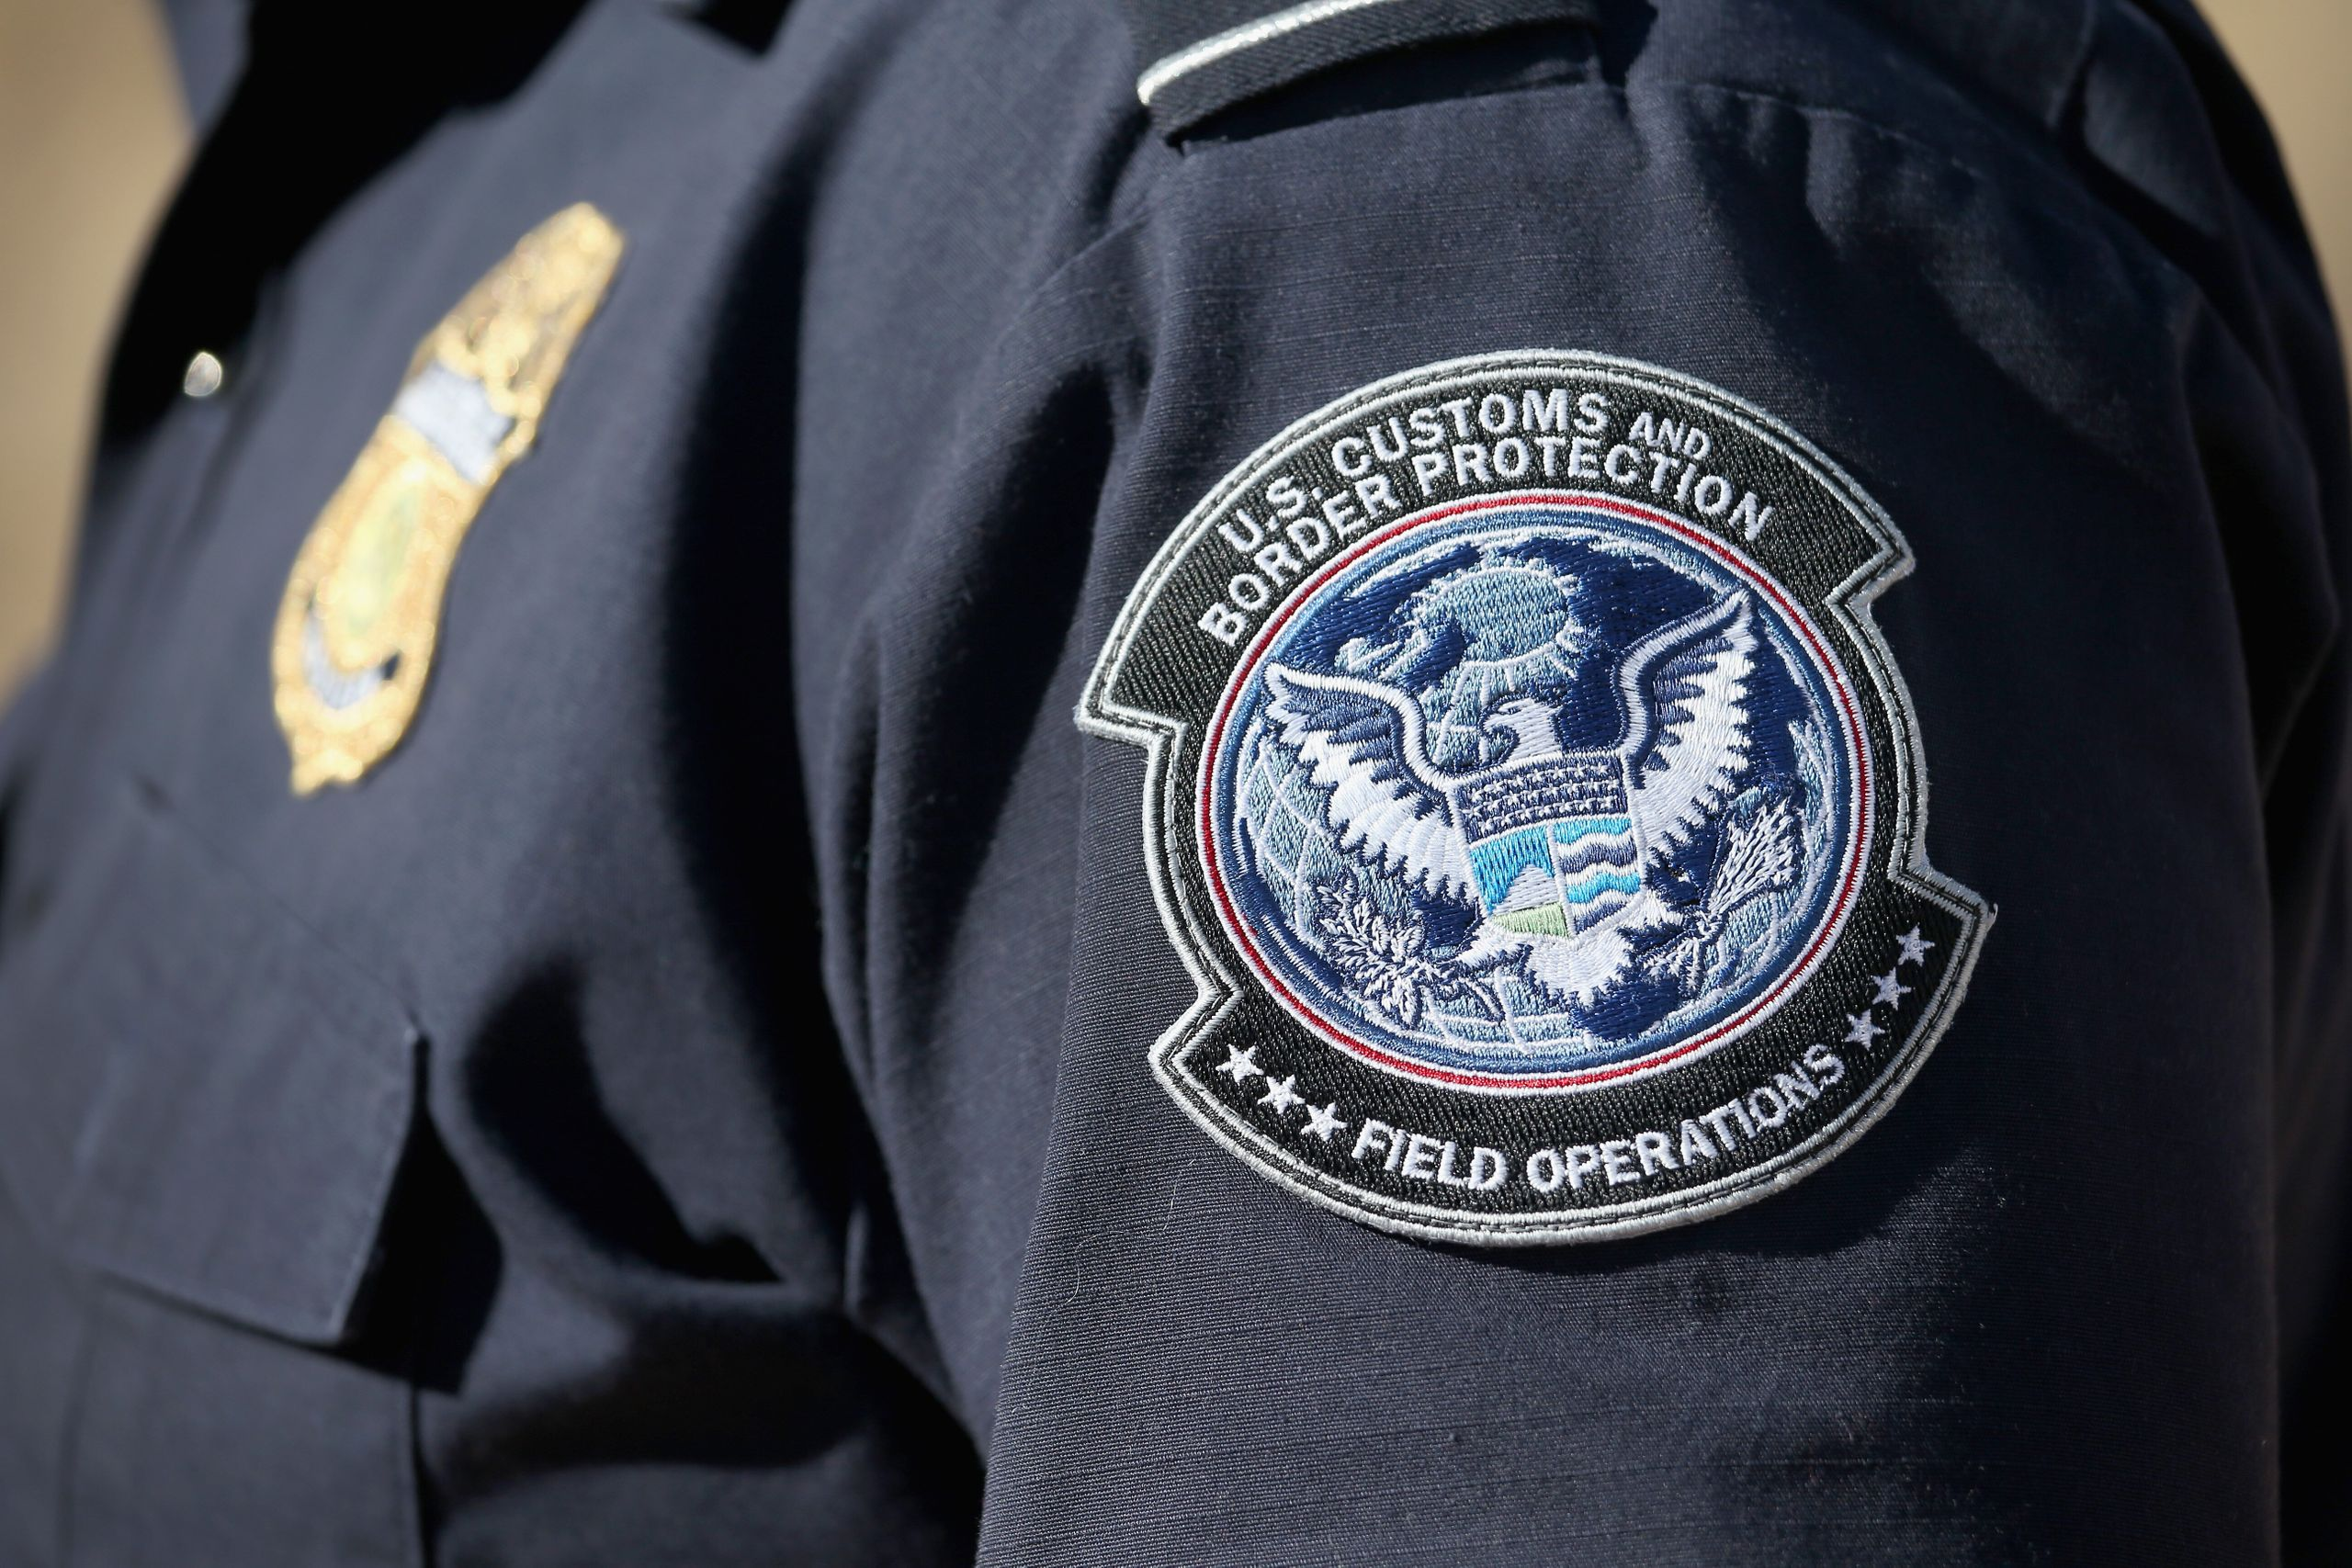 An officer from the U.S. Office of Field Operations stands near the U.S.-Mexico border on Feb. 26, 2013, in Nogales, Arizona.